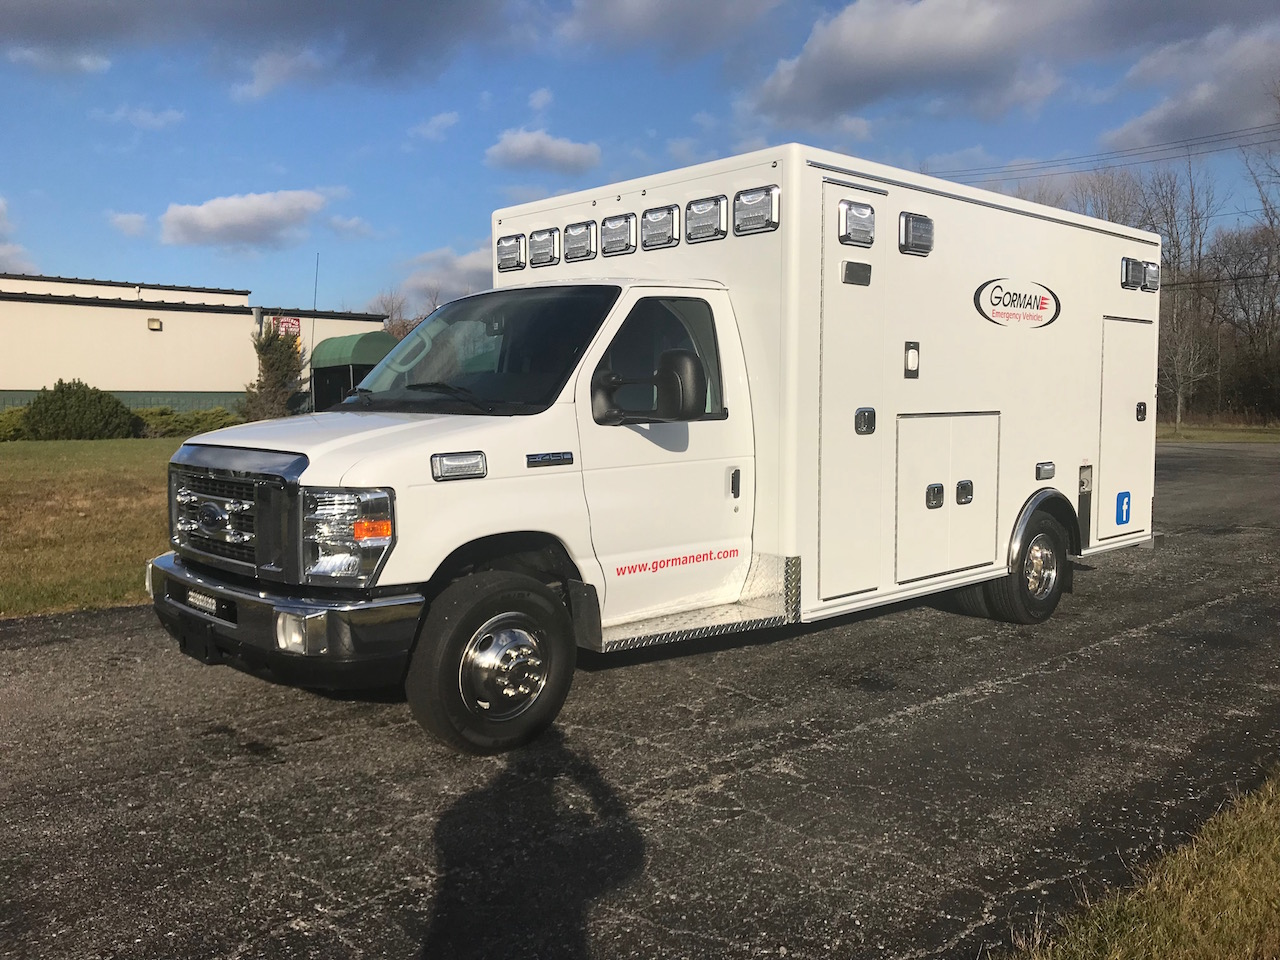 2019 Medix MSV-II 170 Ford E-450 Gas Ambulance For Sale